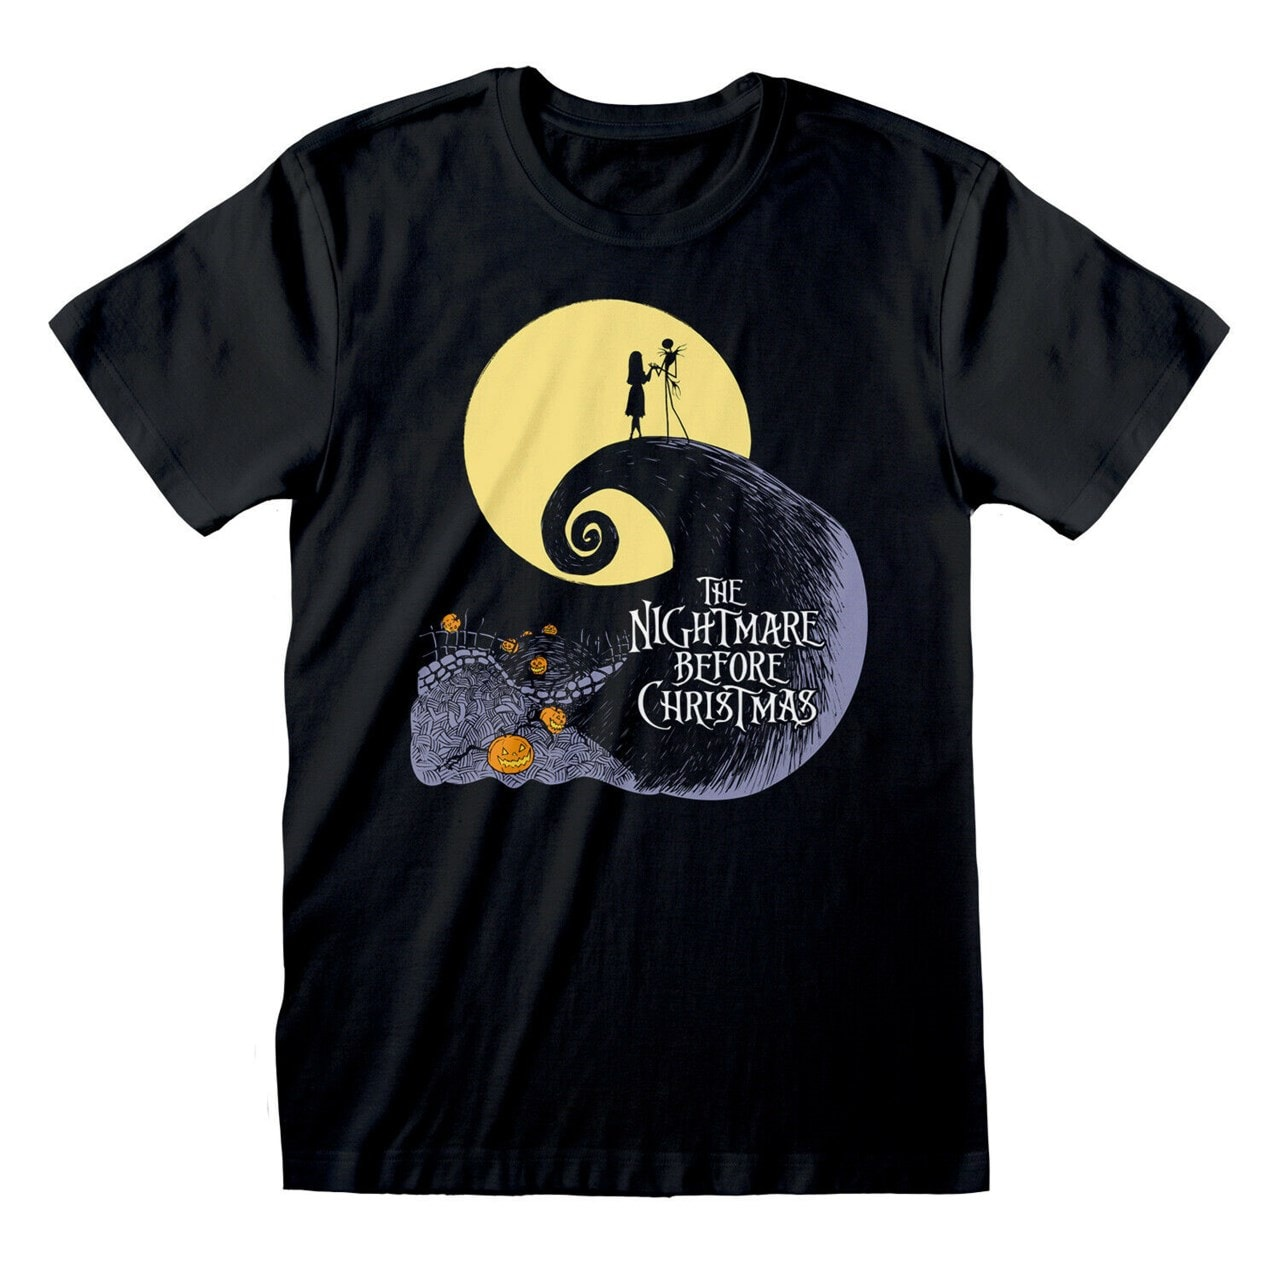 The Nightmare Before Christmas: Silhouette Moon (Small) - 1